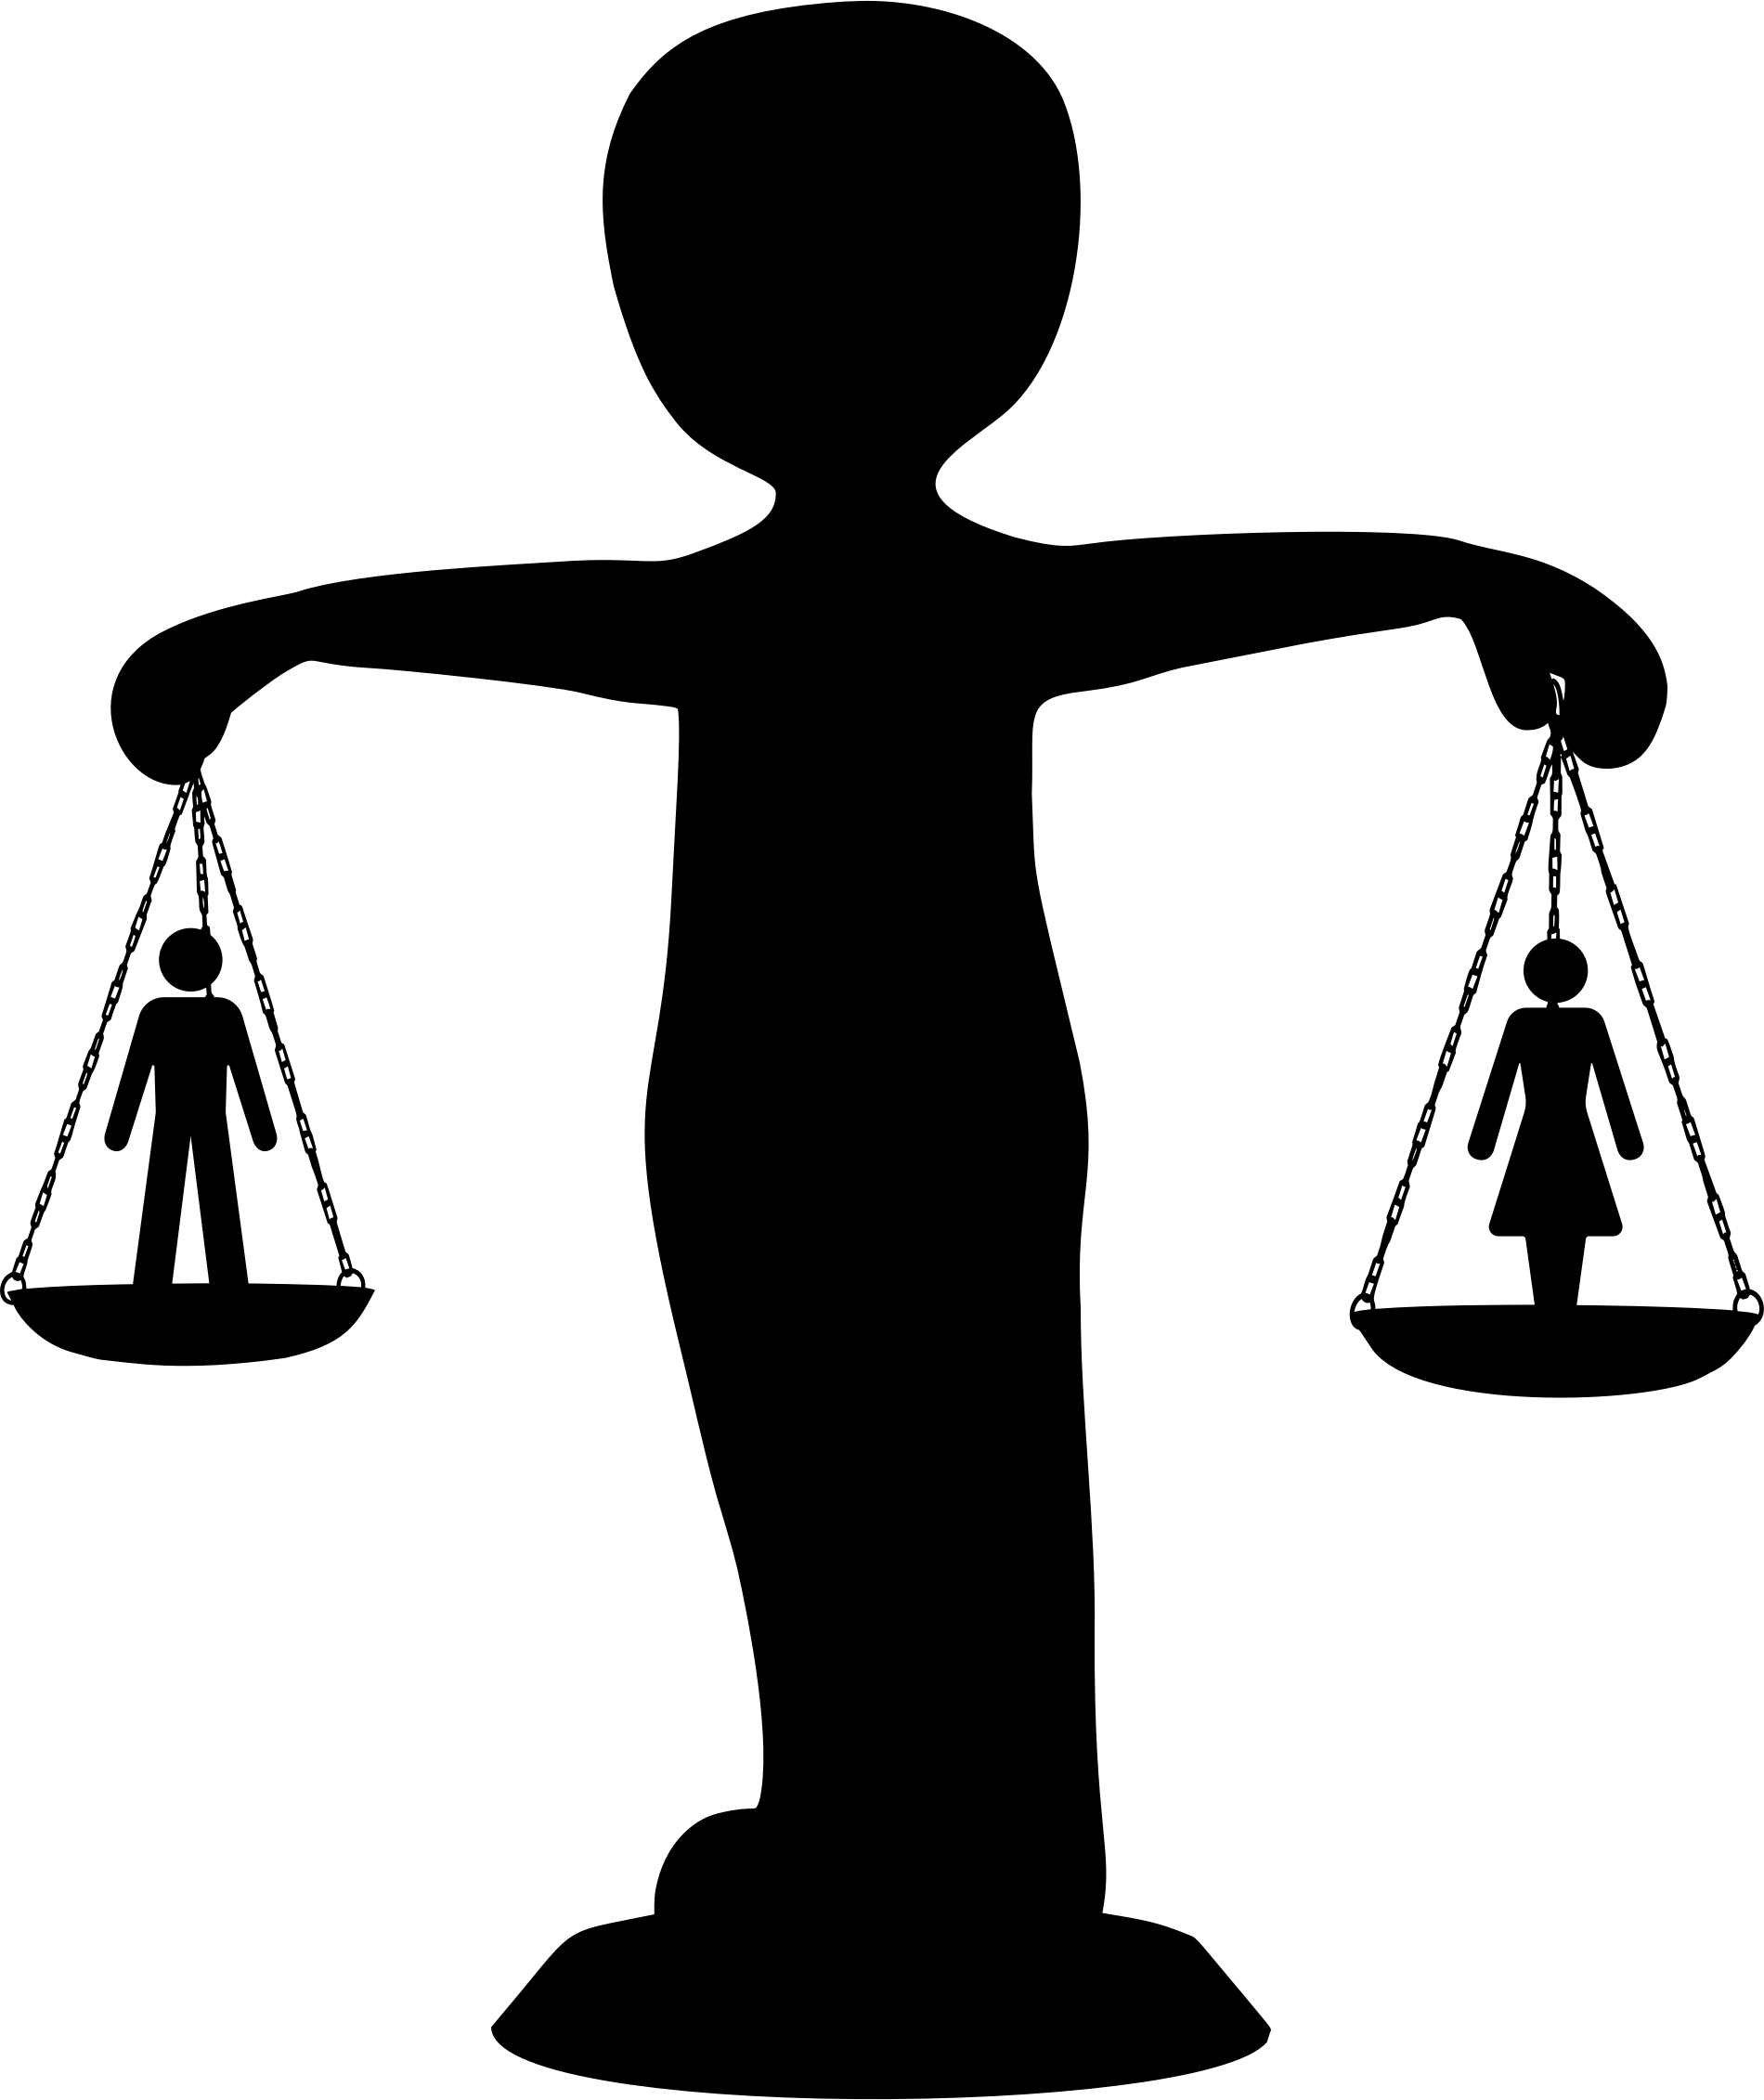 clipart transparent library The role of law. Laws clipart legal system.